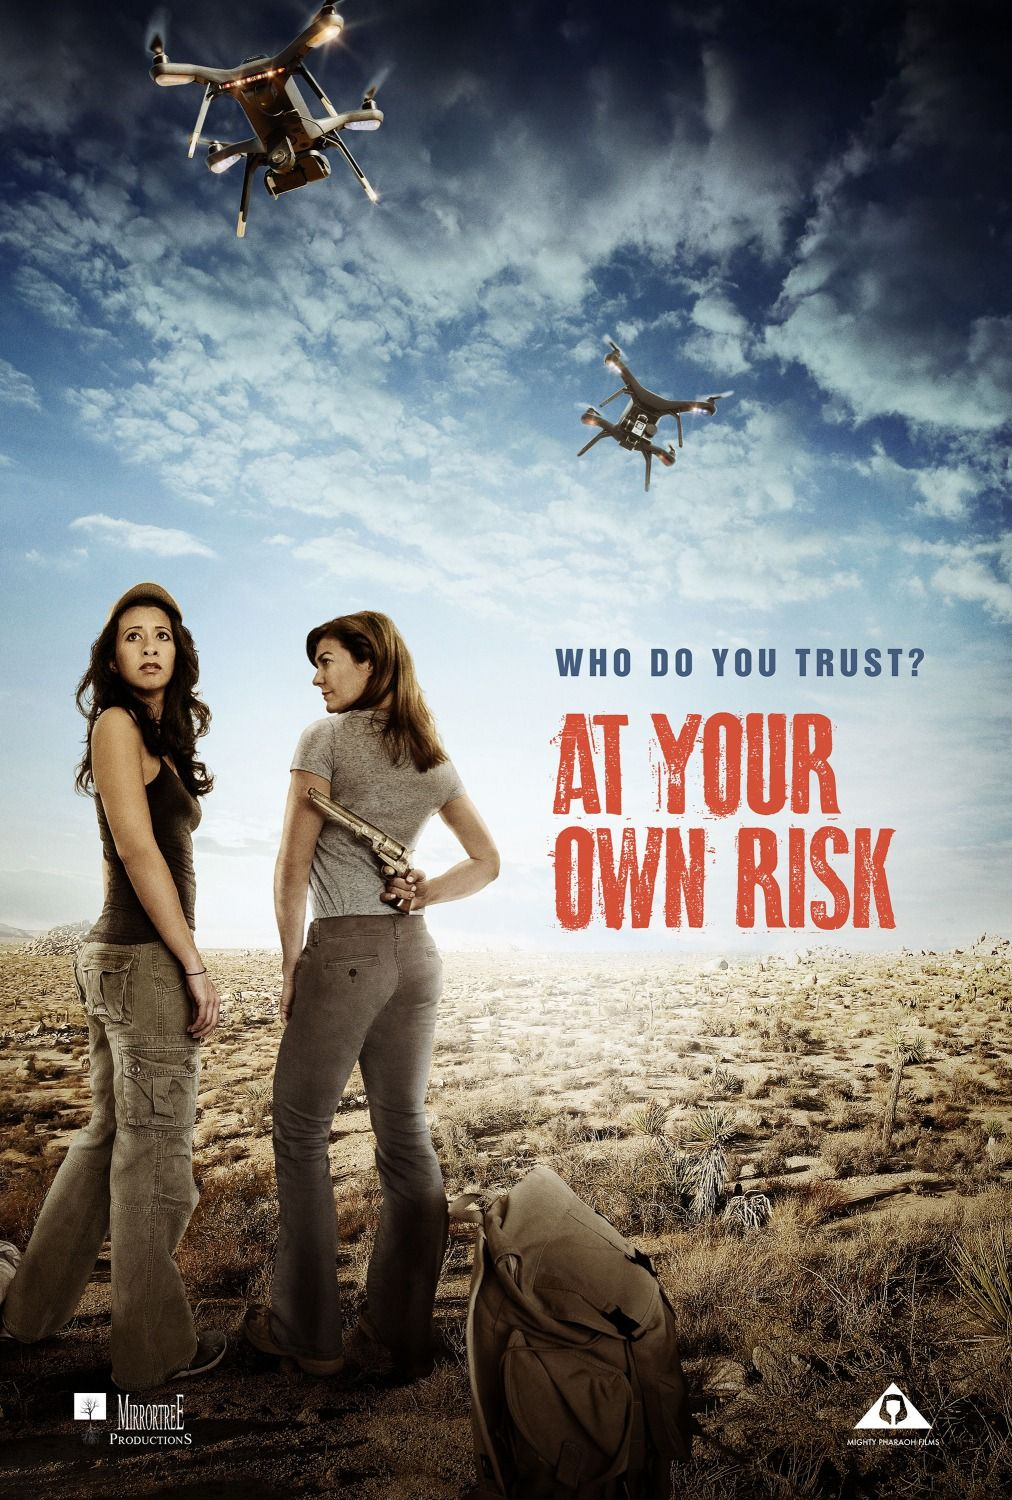 At Your Own Risk 3 movie posters https//teasertrailer